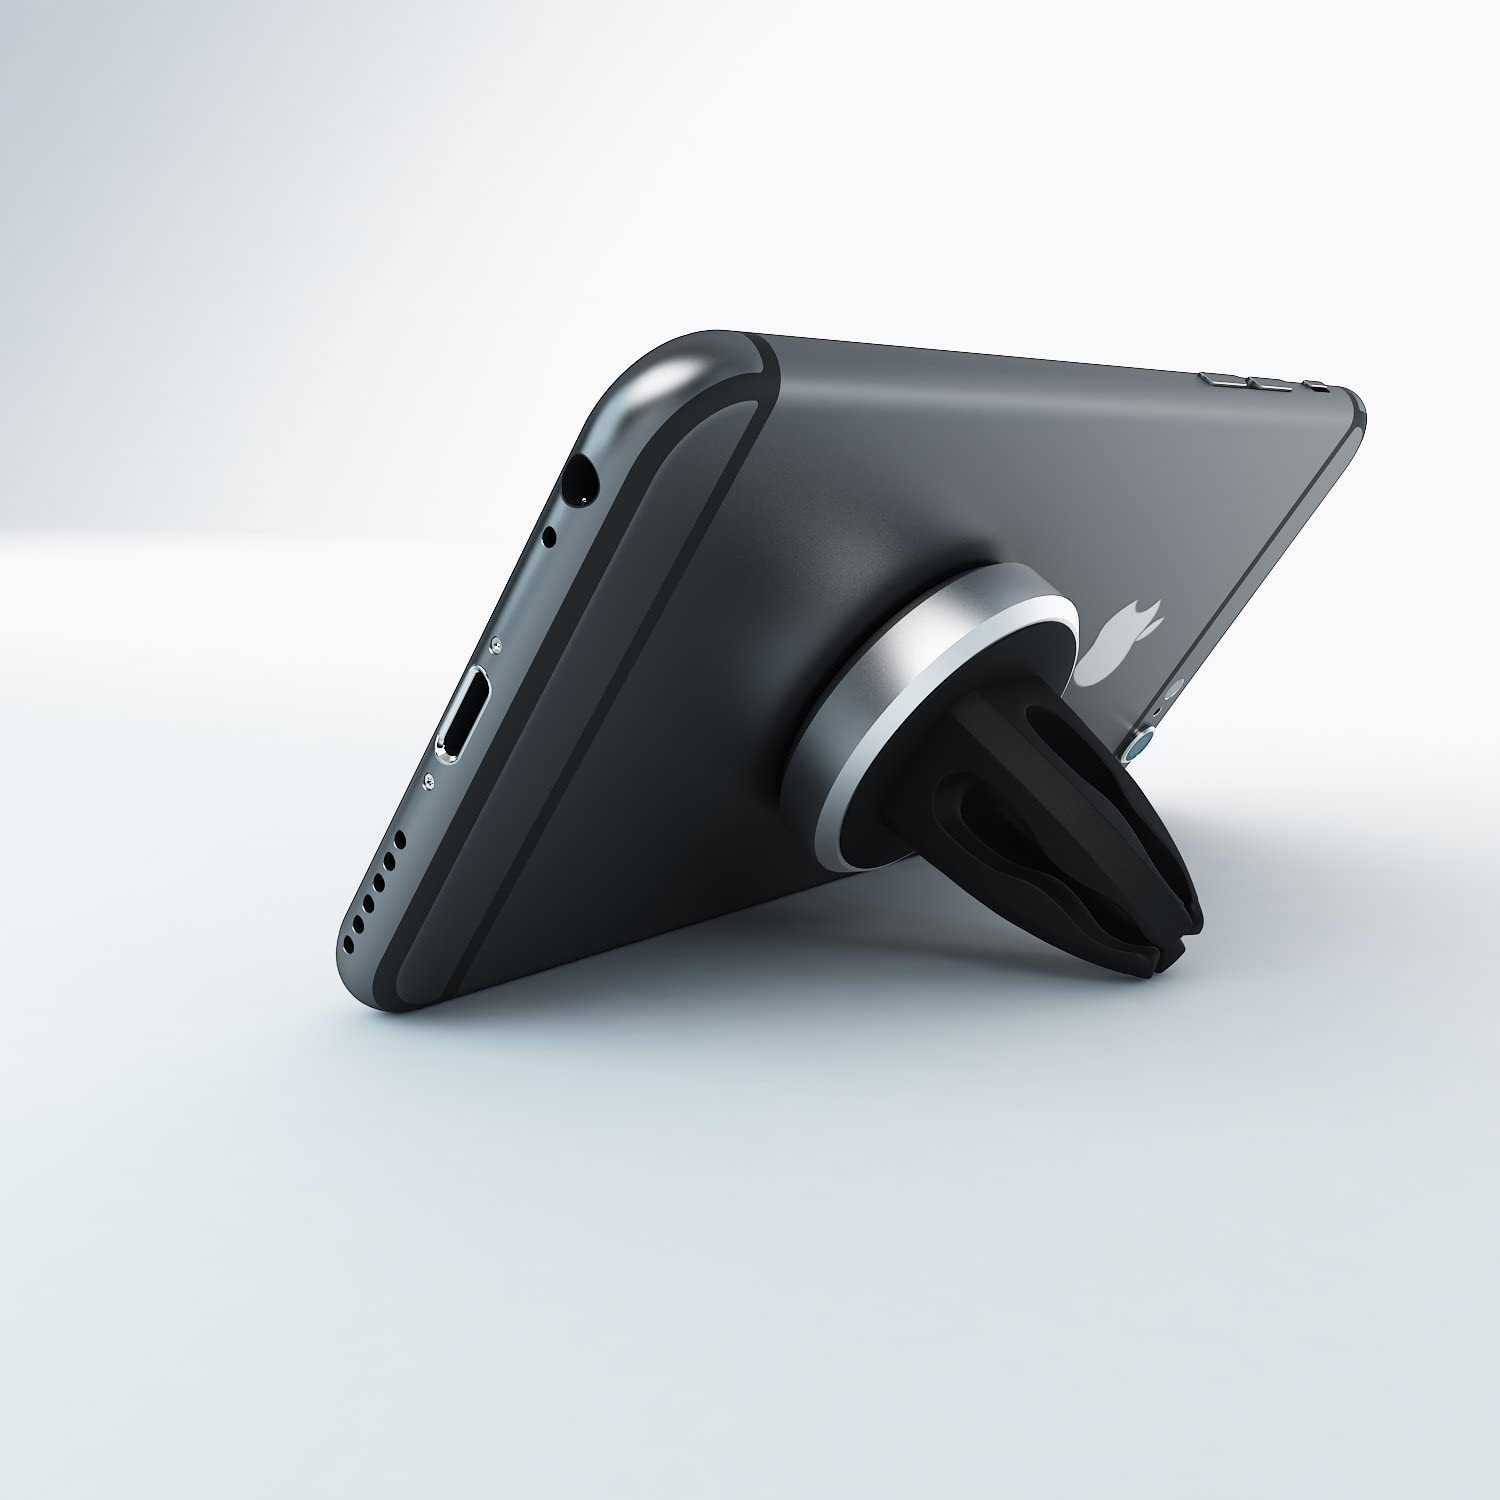 iPhone, Samsung, HTC, LG, Nokia, Blu, iPods, GPS Mengo Slim-Snap Aluminum Magnetic Air Vent Car Mount Holder For Universally Compatible